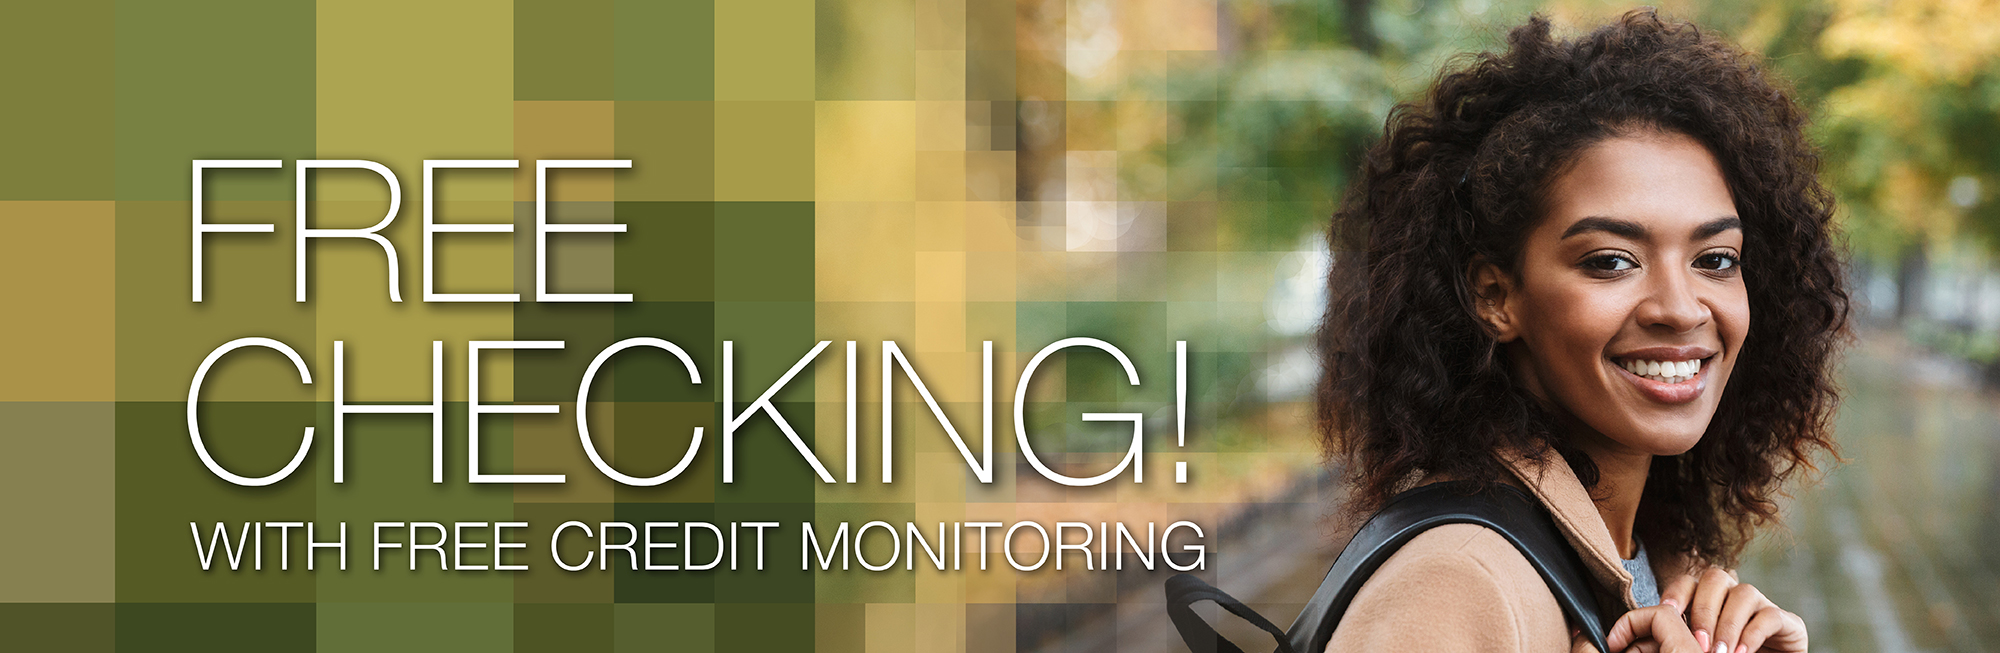 Free Checking with Free Credit Score Acess, Alerts, and Updates in Online and Mobile Banking.